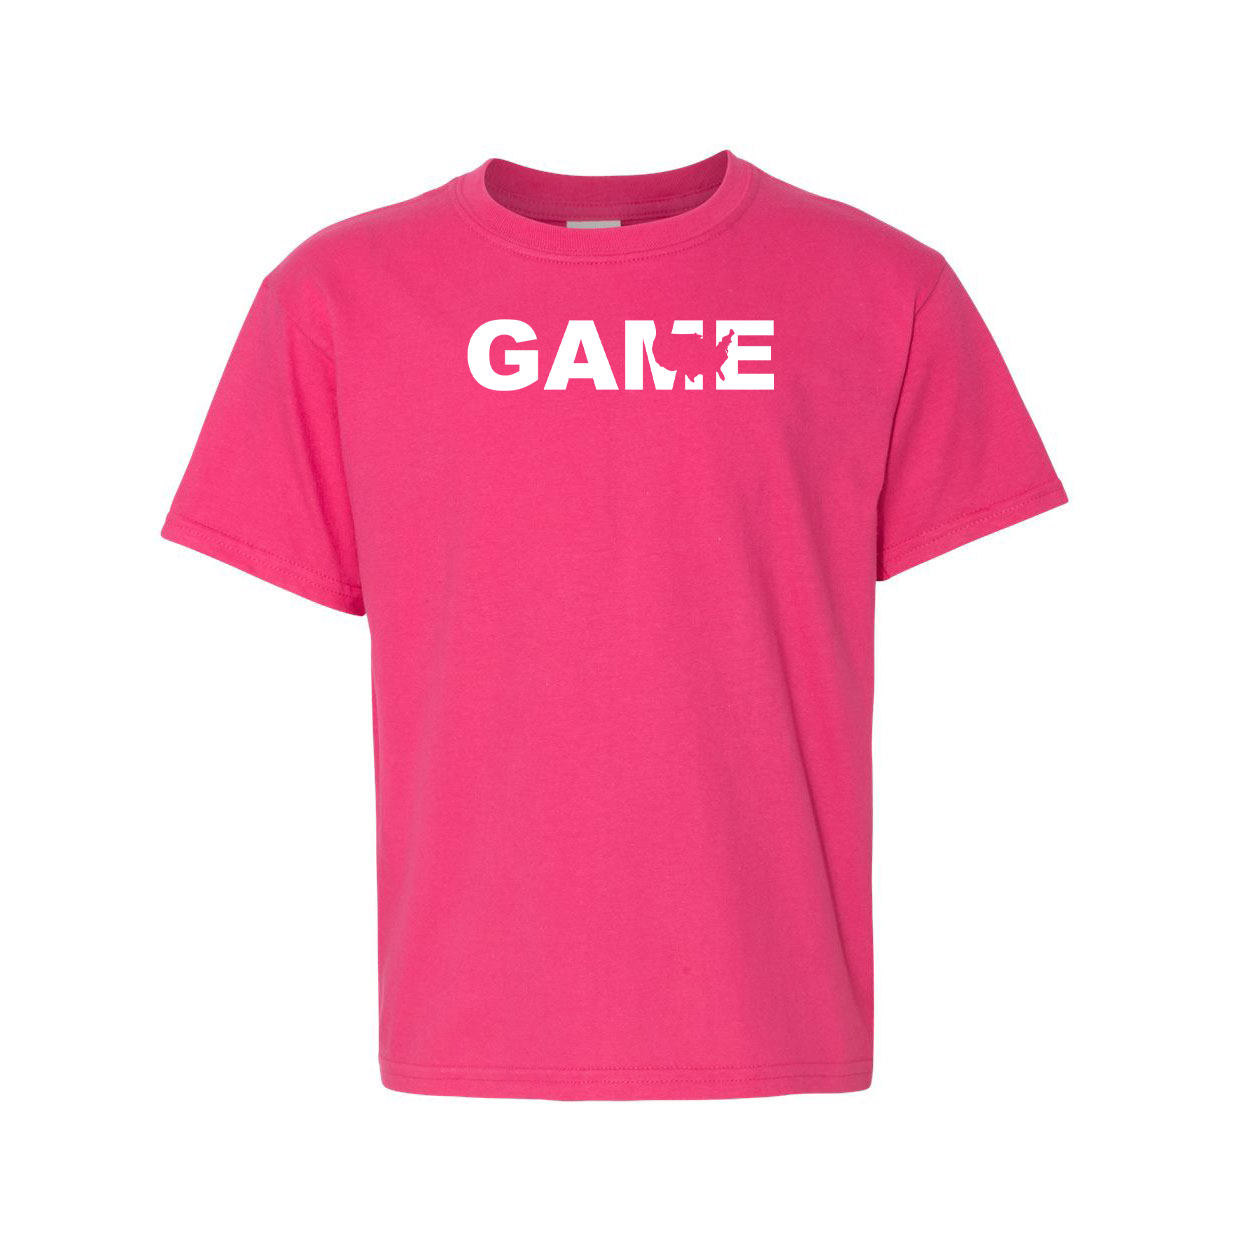 Game United States Classic Youth T-Shirt Pink (White Logo)